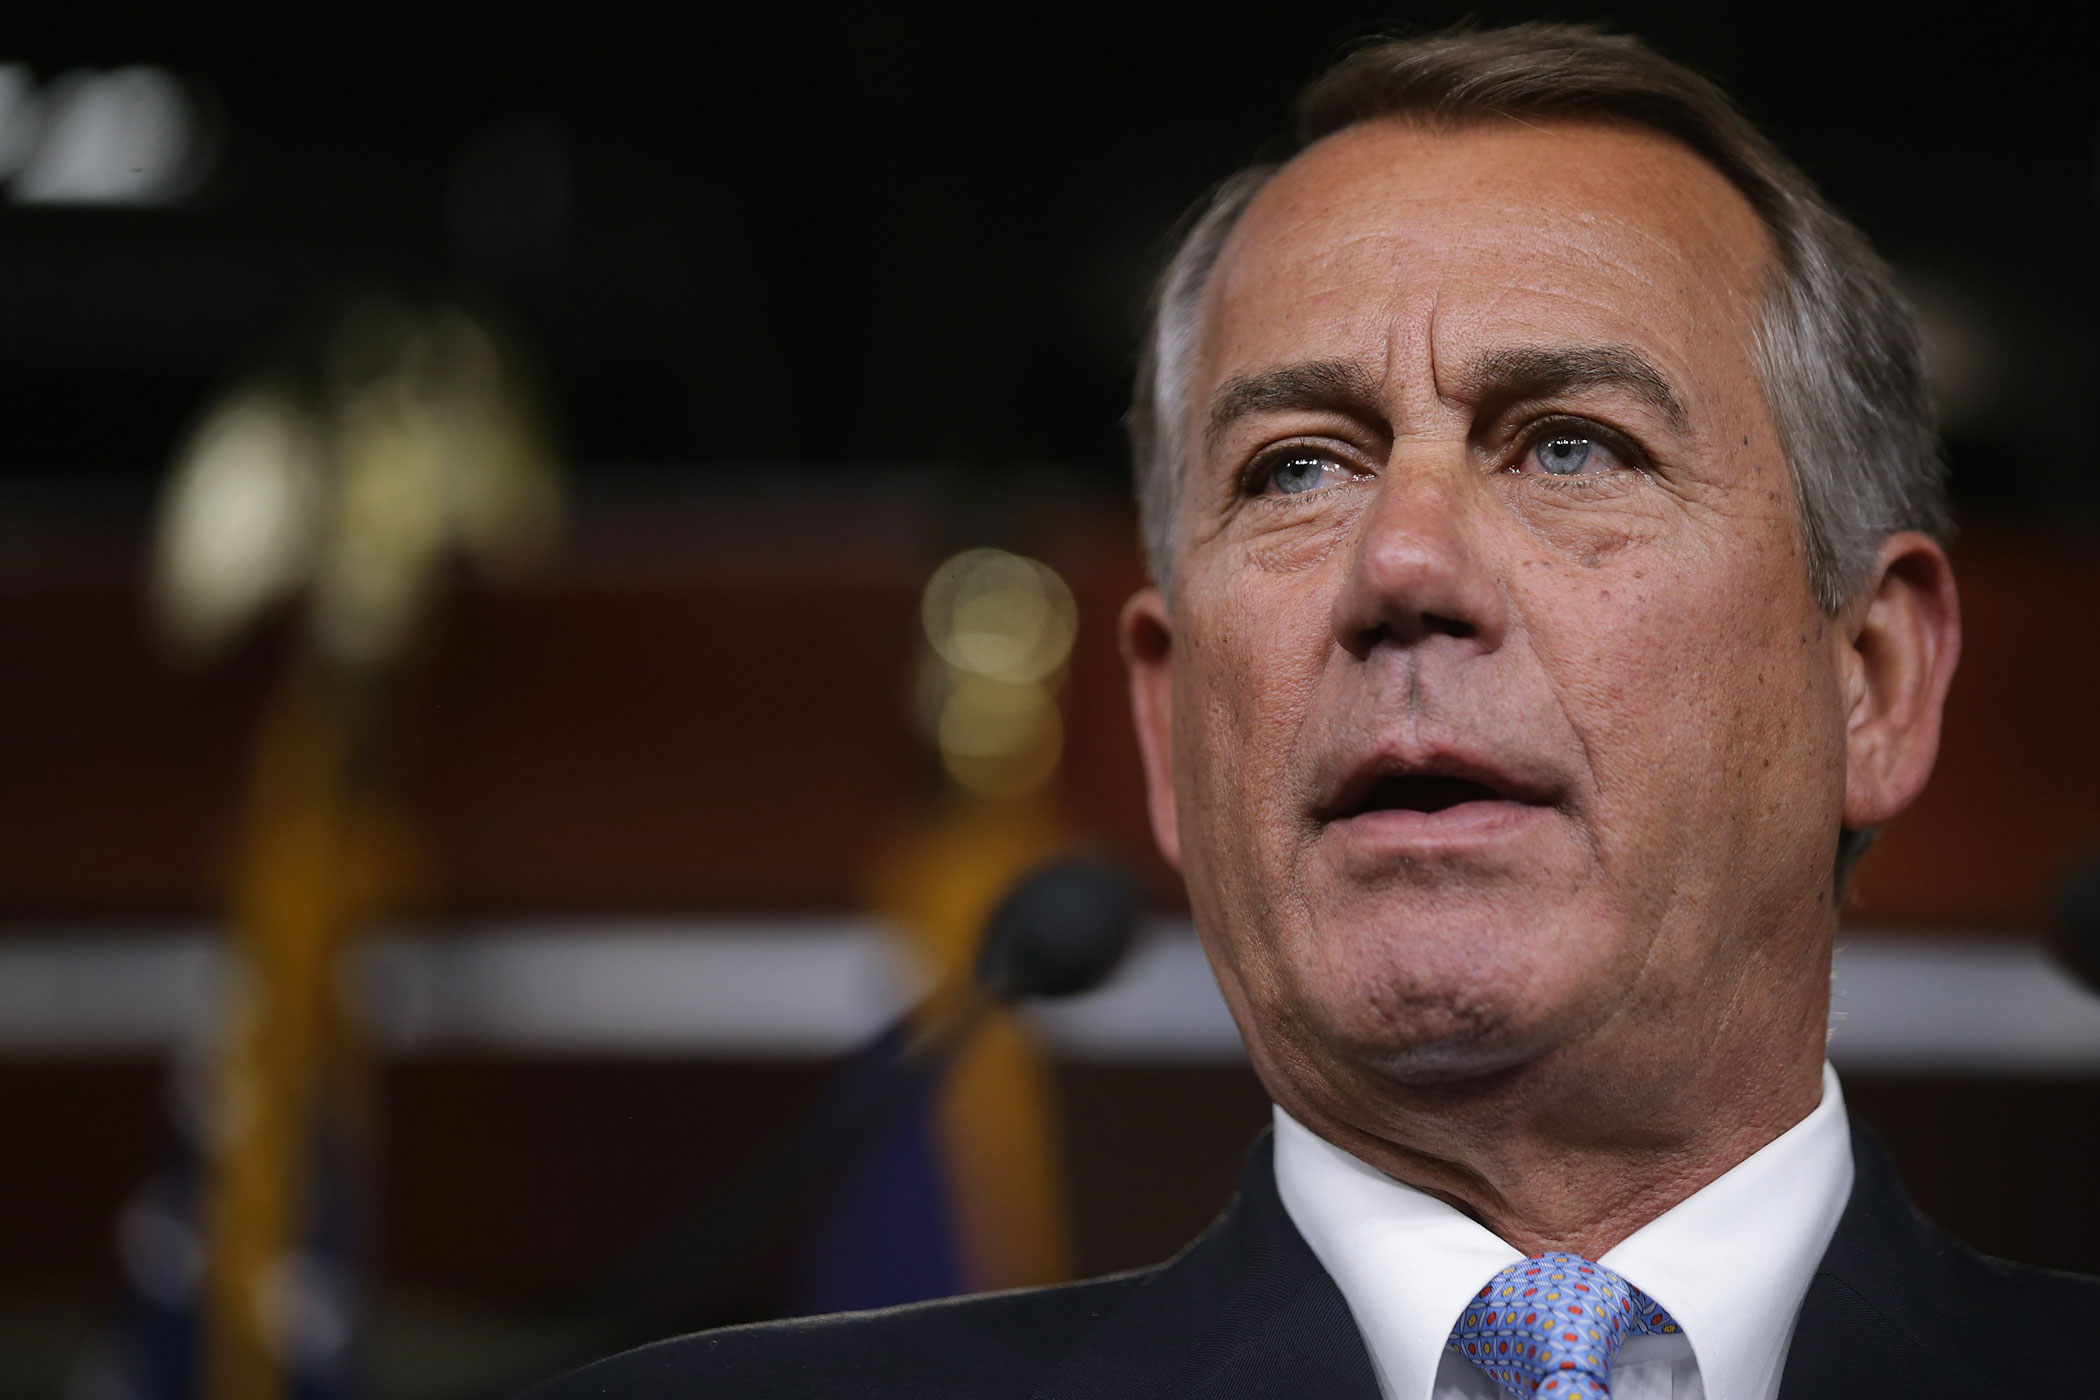 Speaker of the House John Boehner holds his weekly news conference at the U.S. Capitol on Feb. 5, 2015 in Washington, DC.